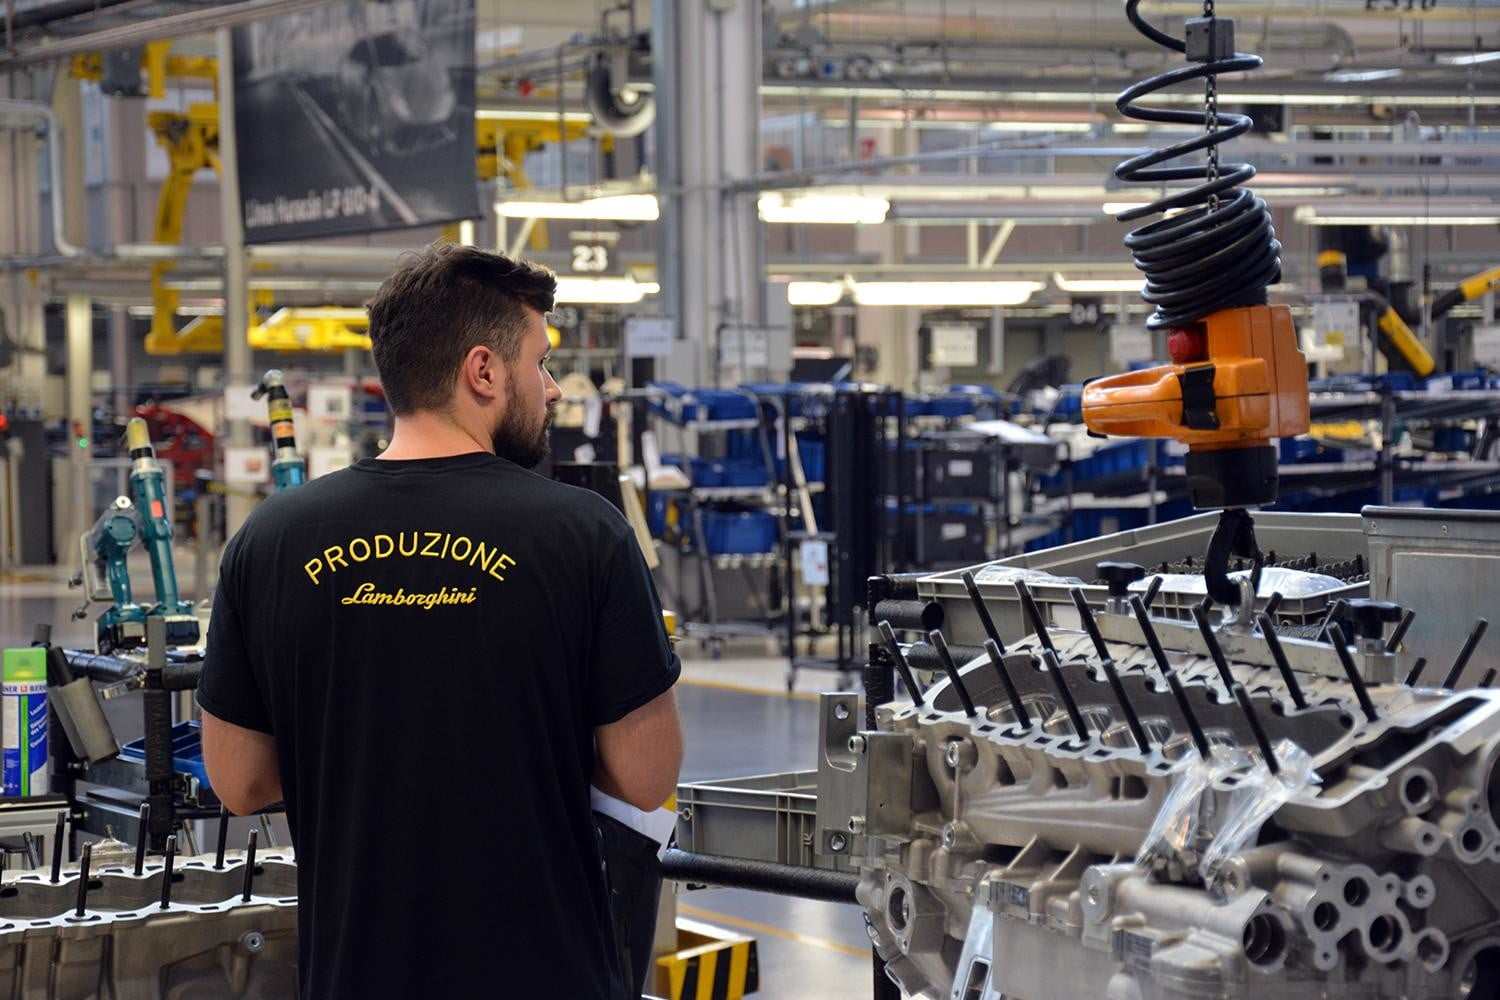 """Employees wear a black Lamborghini uniform that clearly indicates whether they're assembly line workers, part of the factory's logistics team, assigned to the prototype-building division and so forth. """"Produzione"""" (Italian for """"production"""") means the man pictured here is an assembly line worker."""